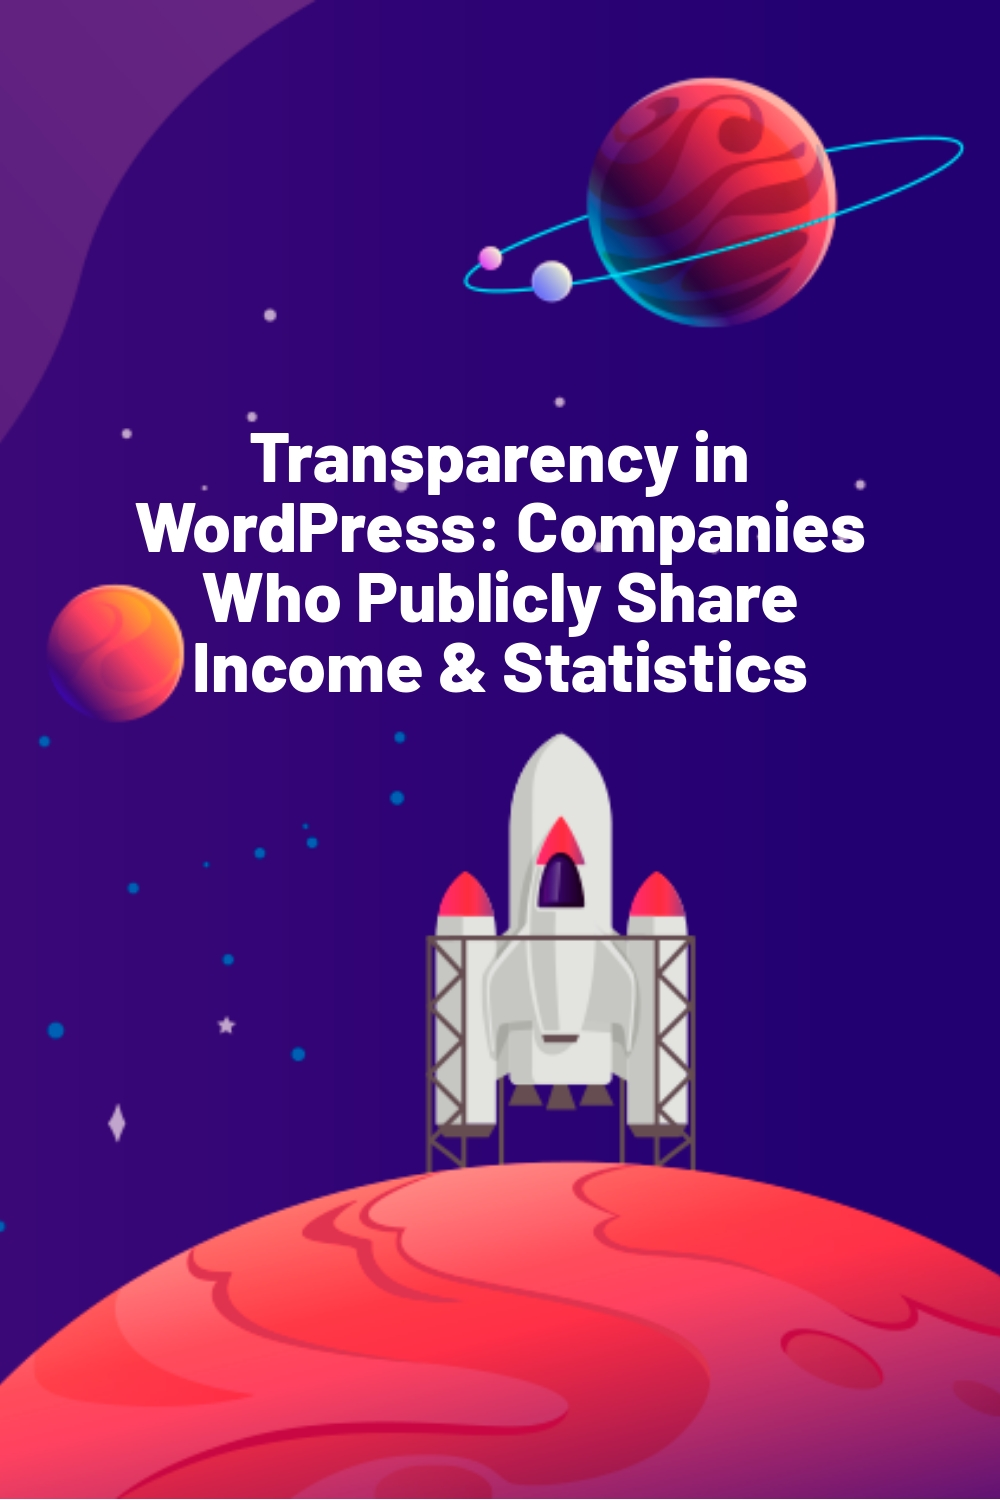 Transparency in WordPress: Companies Who Publicly Share Income & Statistics